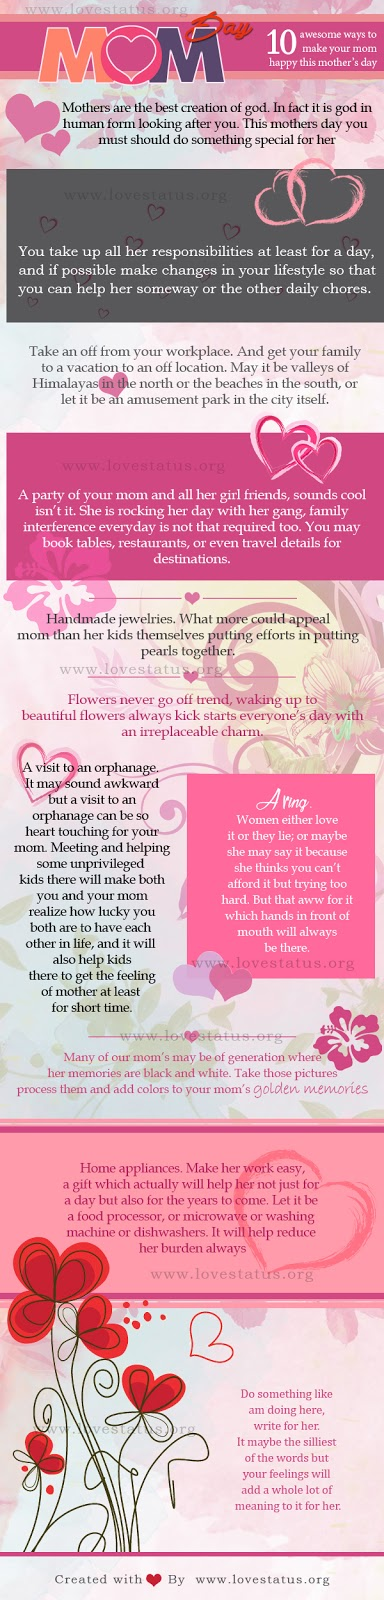 10 Awesome ways to make your Mom happy this mother's day